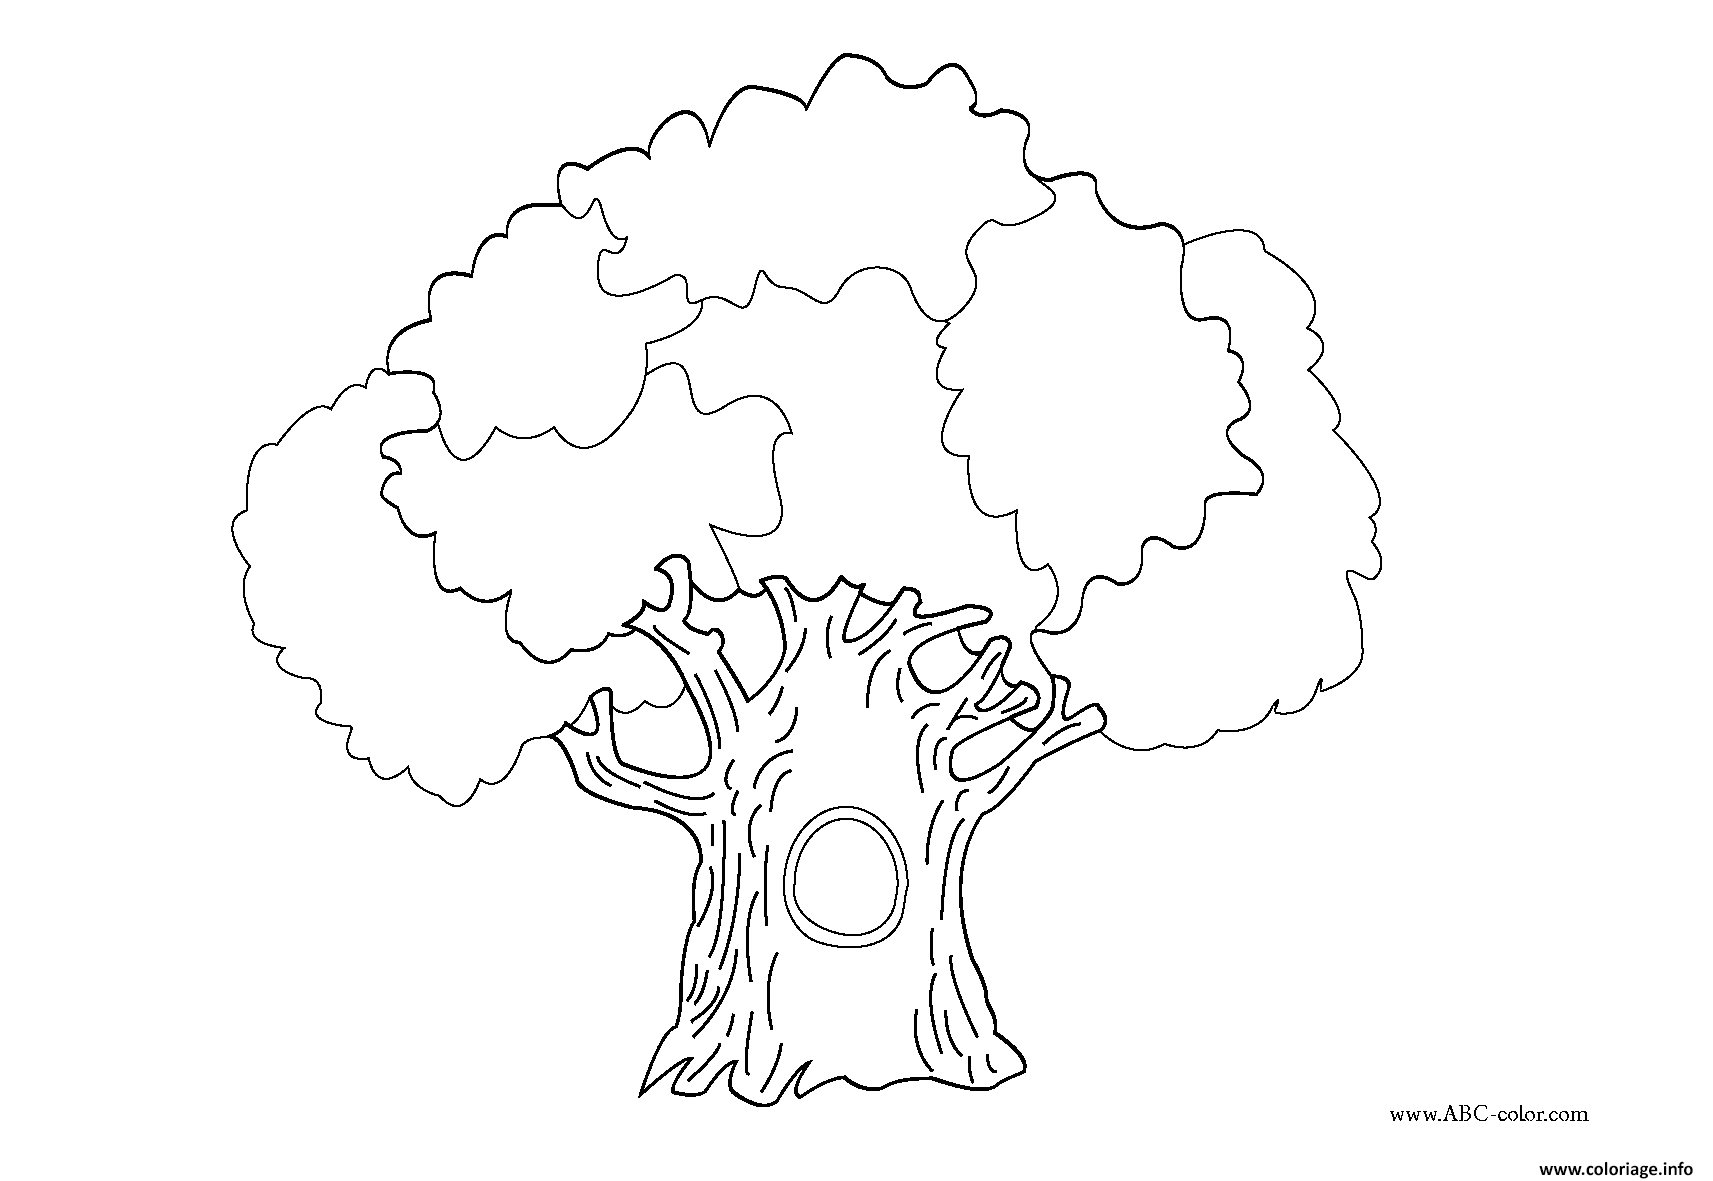 Coloriage arbre 99 dessin - Dessin arbre simple ...